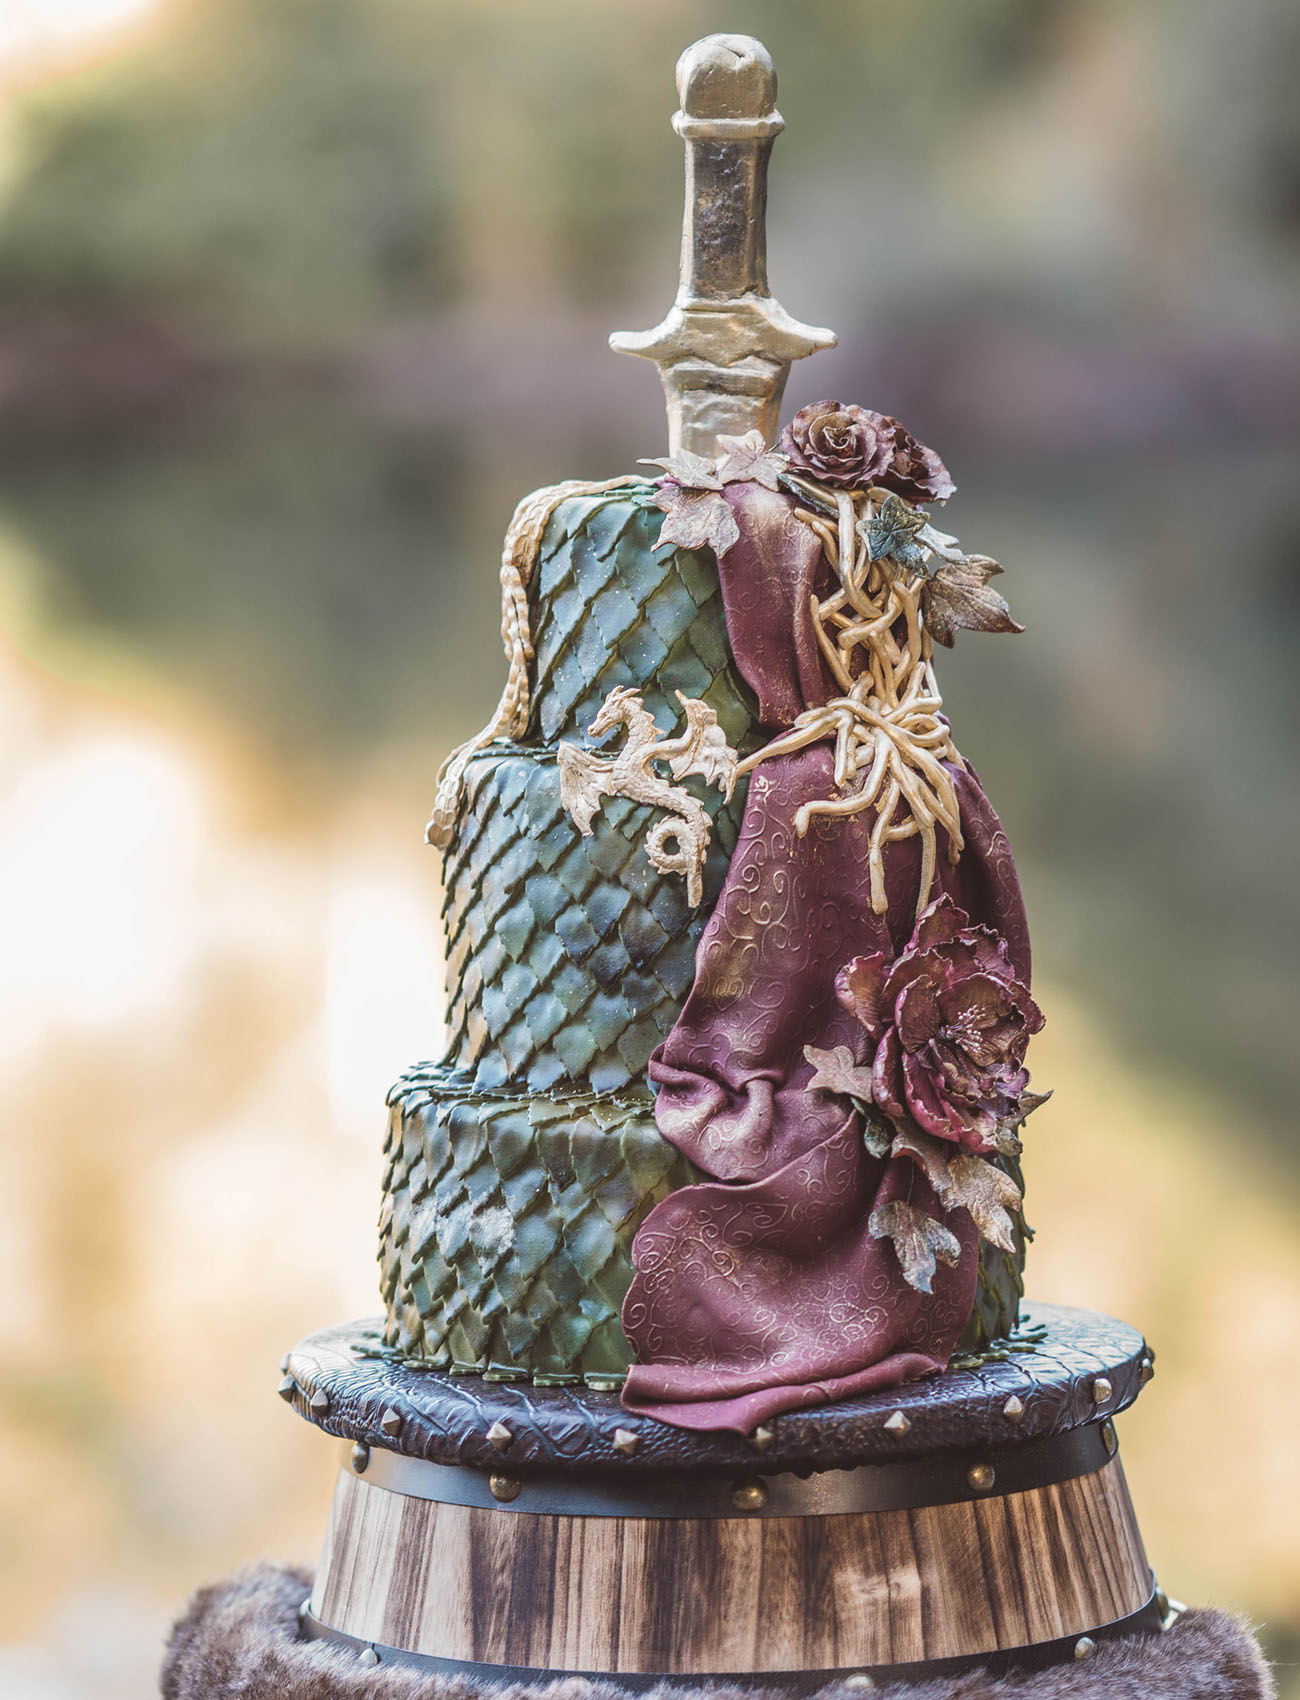 a unique wedding cake imitating green dragon scale, gilded dragons, a sword, sugar blooms looks very GOTH like